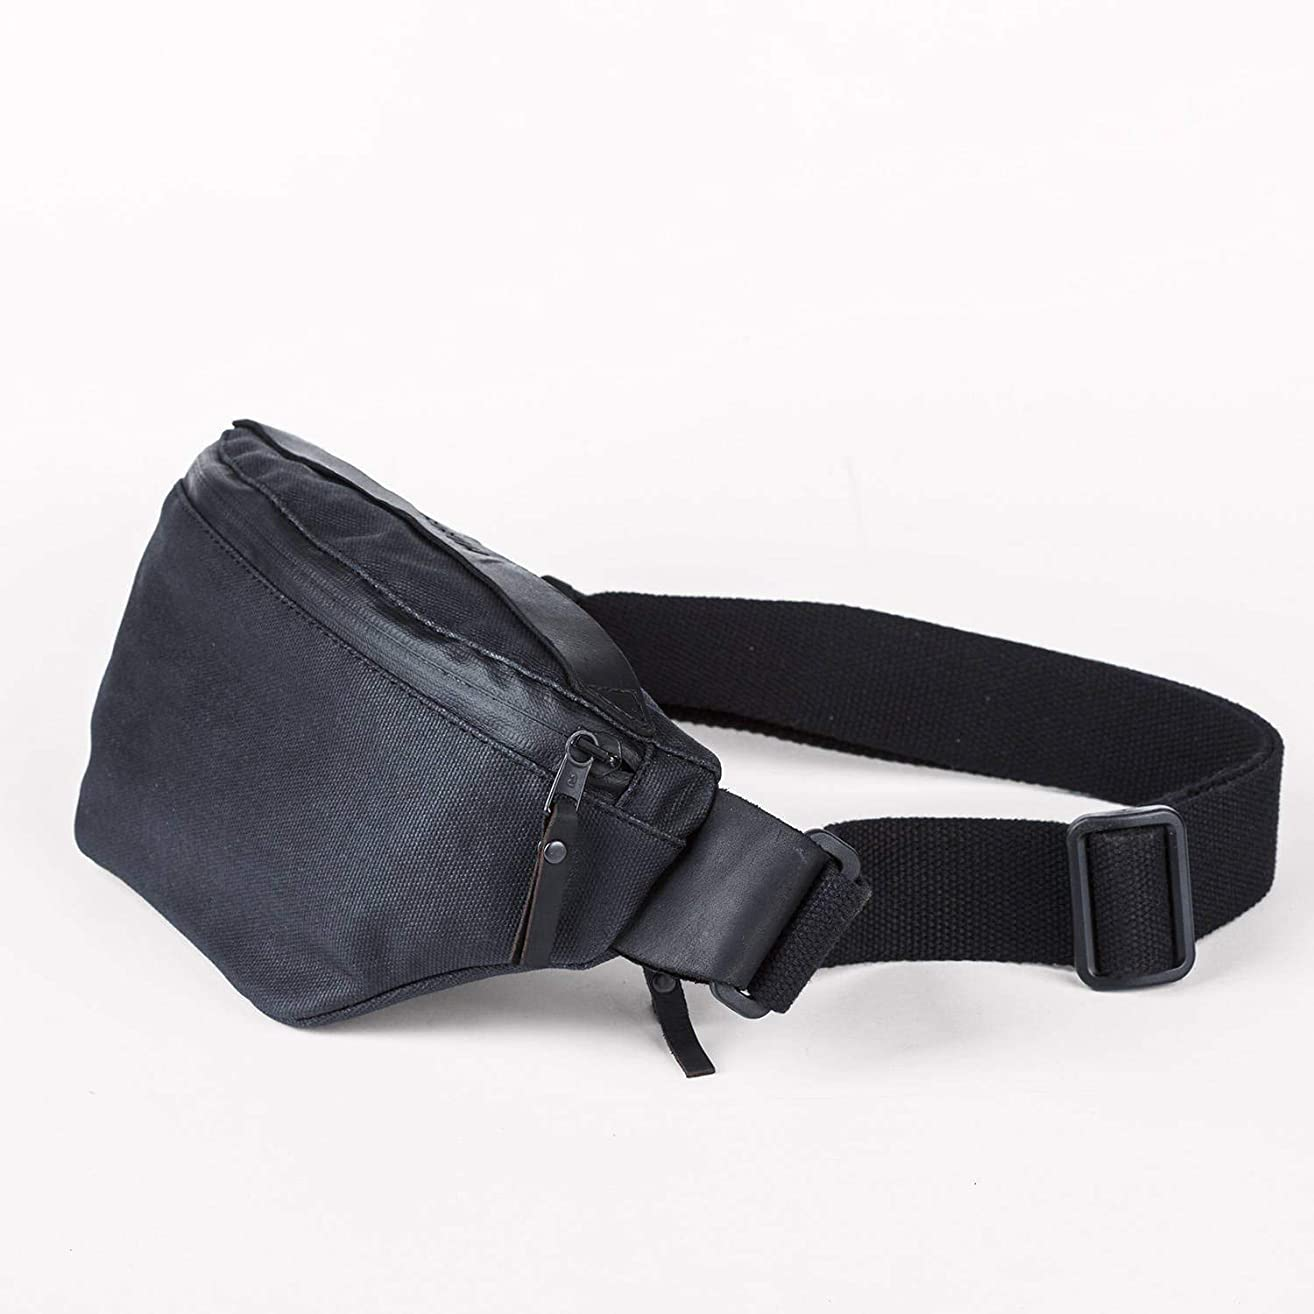 Waist Bag, Leather Waist Bag, Men's Fanny Pack, Hip Bag, Bum Bag, Canvas Waist Bag, Belt Bag, Leather Fanny Pack, Waist Pack, Waist Purse, Festival Bag, Hip Bag, Waist Pouch,Small Bag,Black Fanny Pack